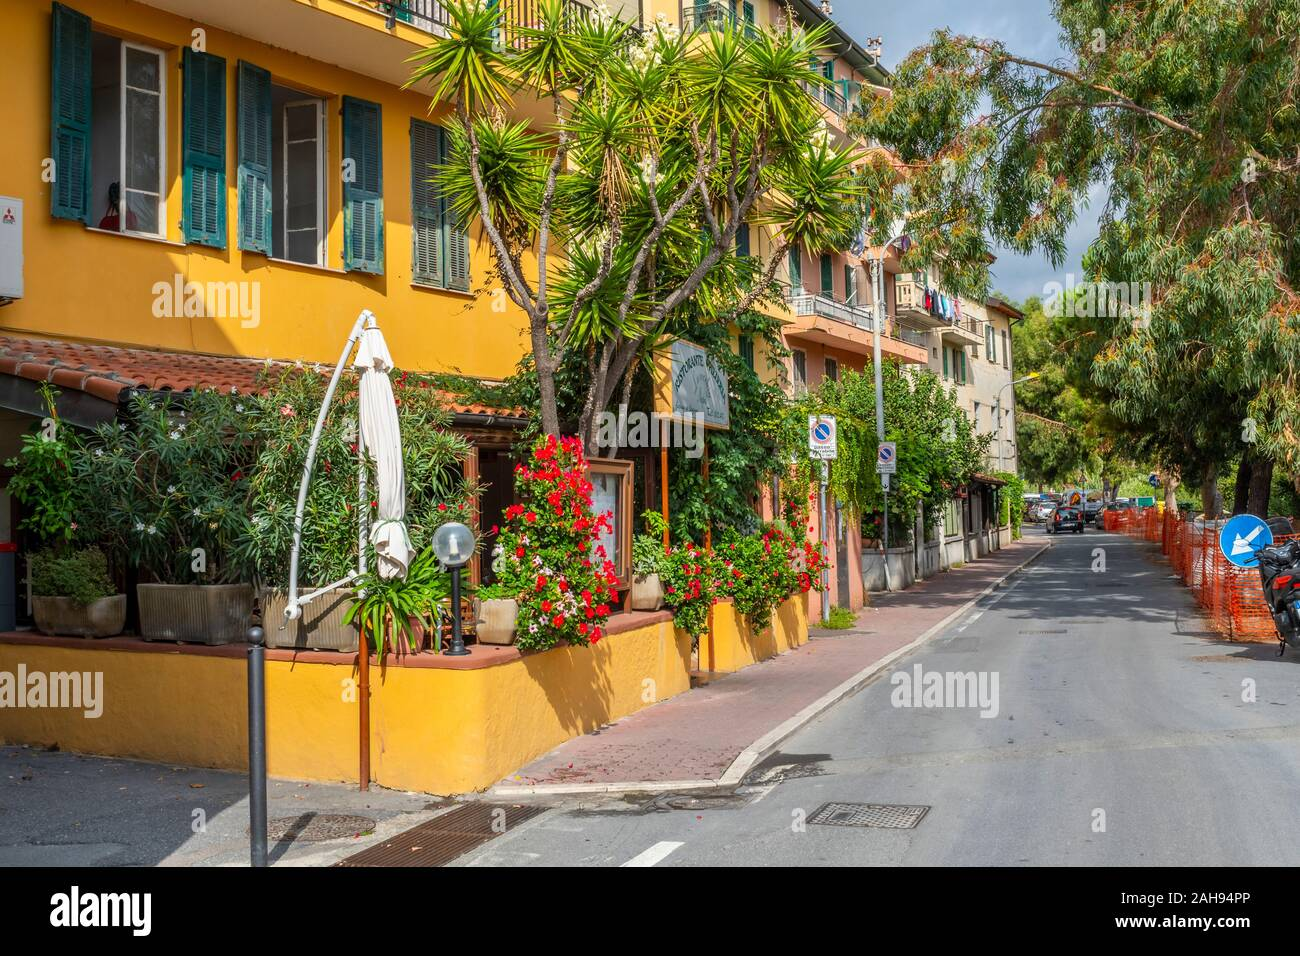 A colorful restaurant with a patio on the outskirts of the Ligurian city of Ventimiglia, Italy, on the Italian Riviera Stock Photo